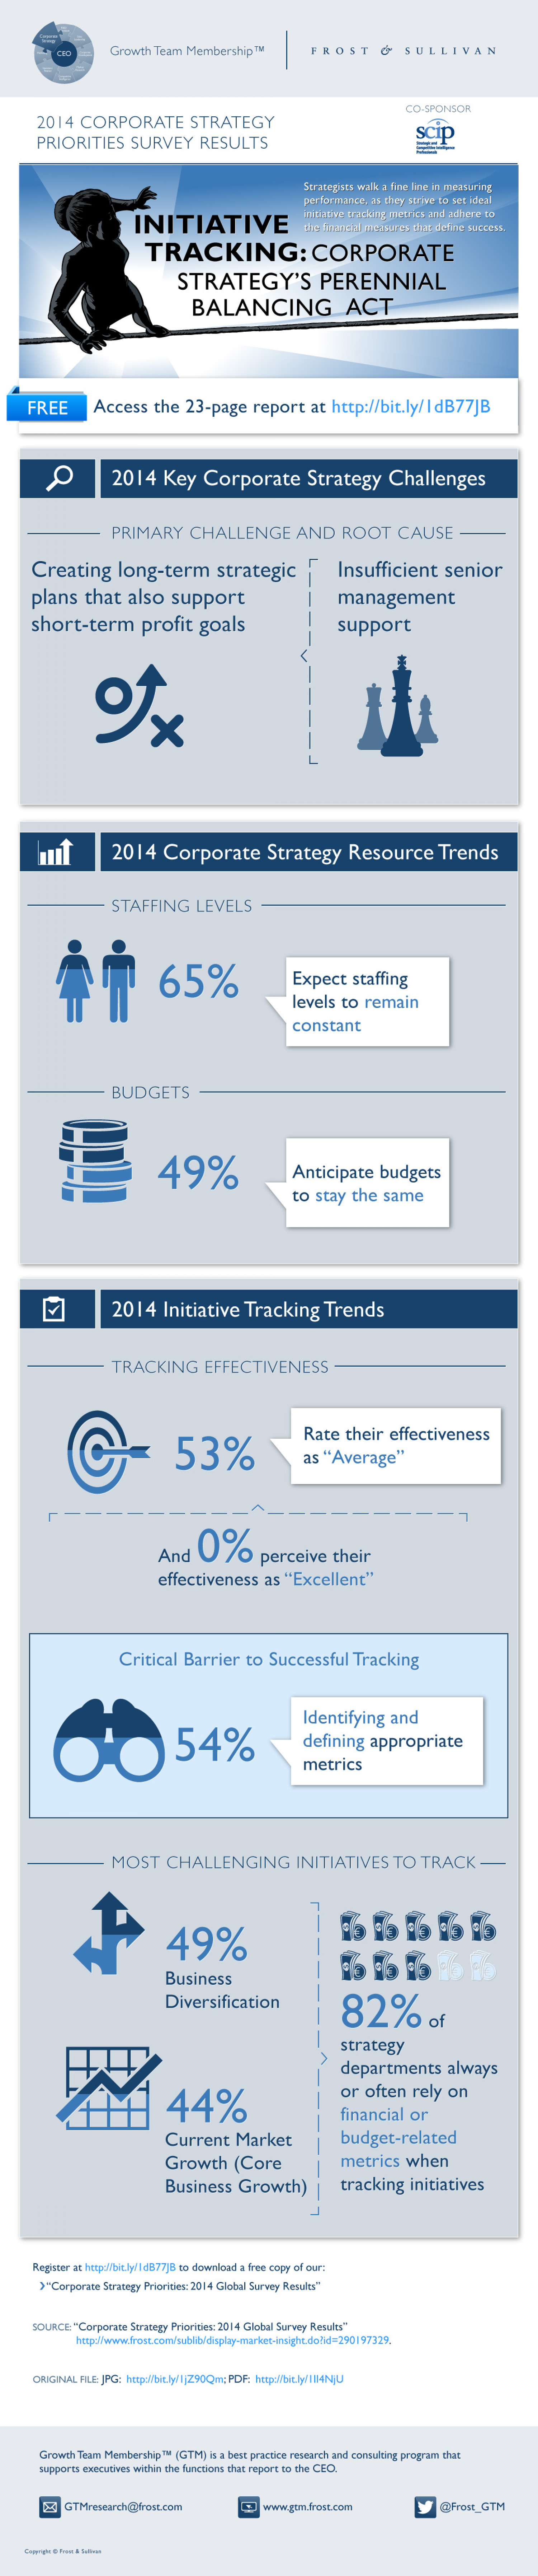 Initiative Tracking: Corporate Strategy's Perennial Balancing Act Infographic